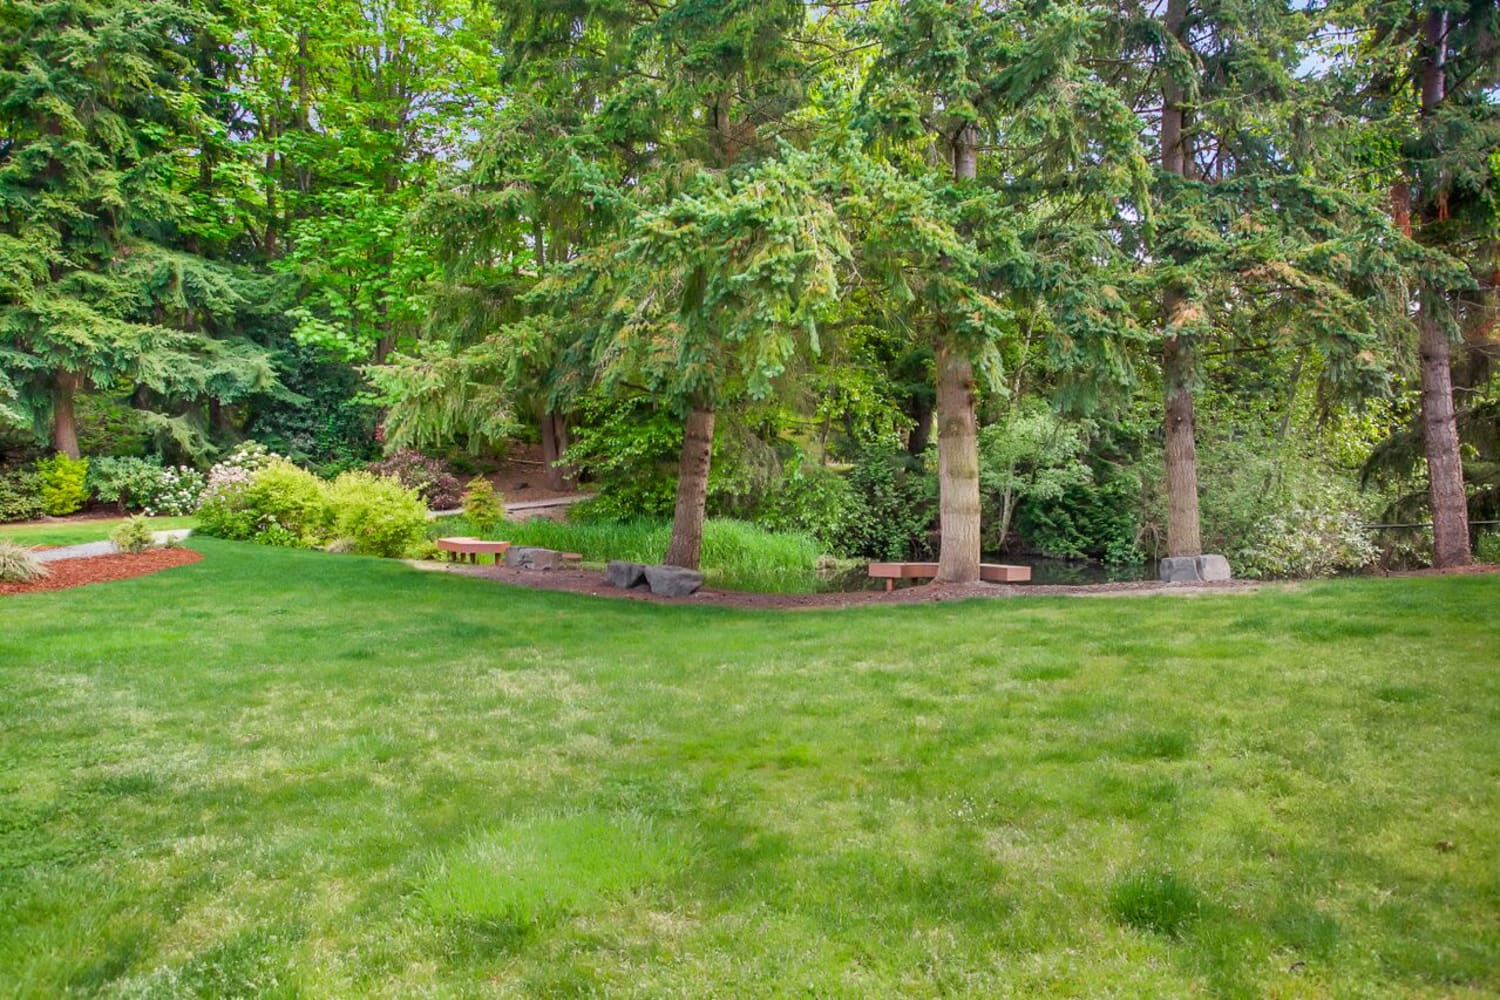 Grassy area for pets to play at The VUE in Kirkland, Washington